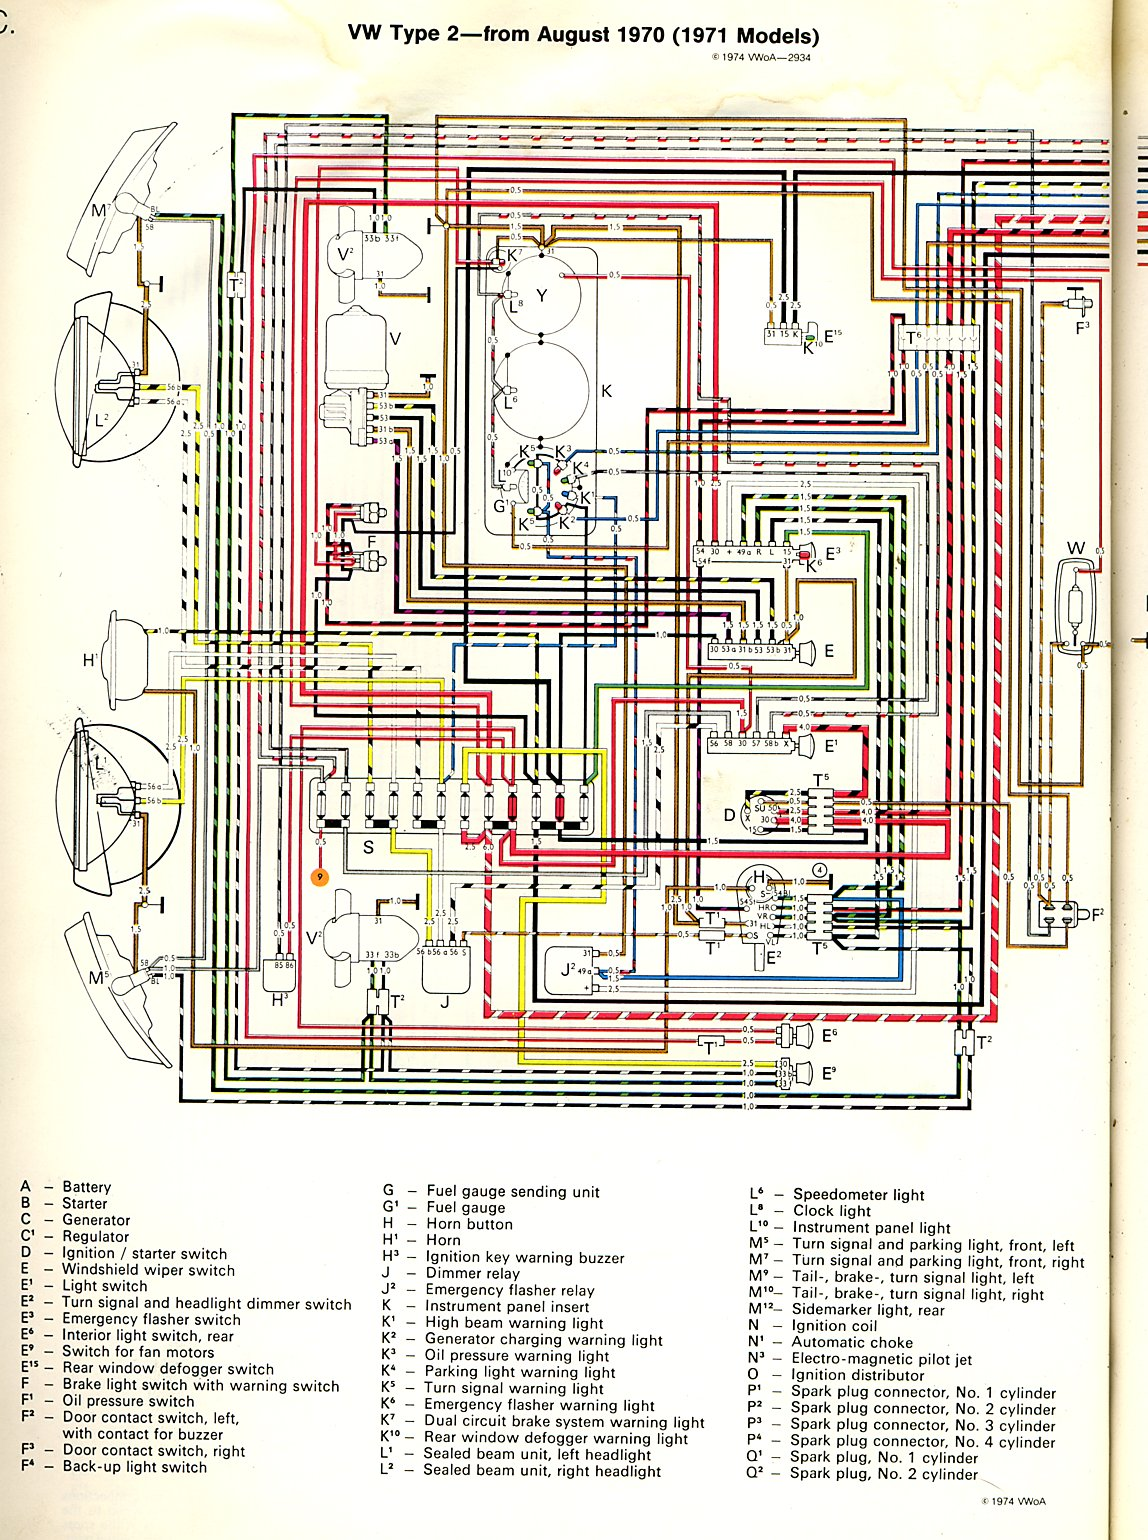 baybus_71a thesamba com type 2 wiring diagrams 1973 vw wiring diagram at pacquiaovsvargaslive.co